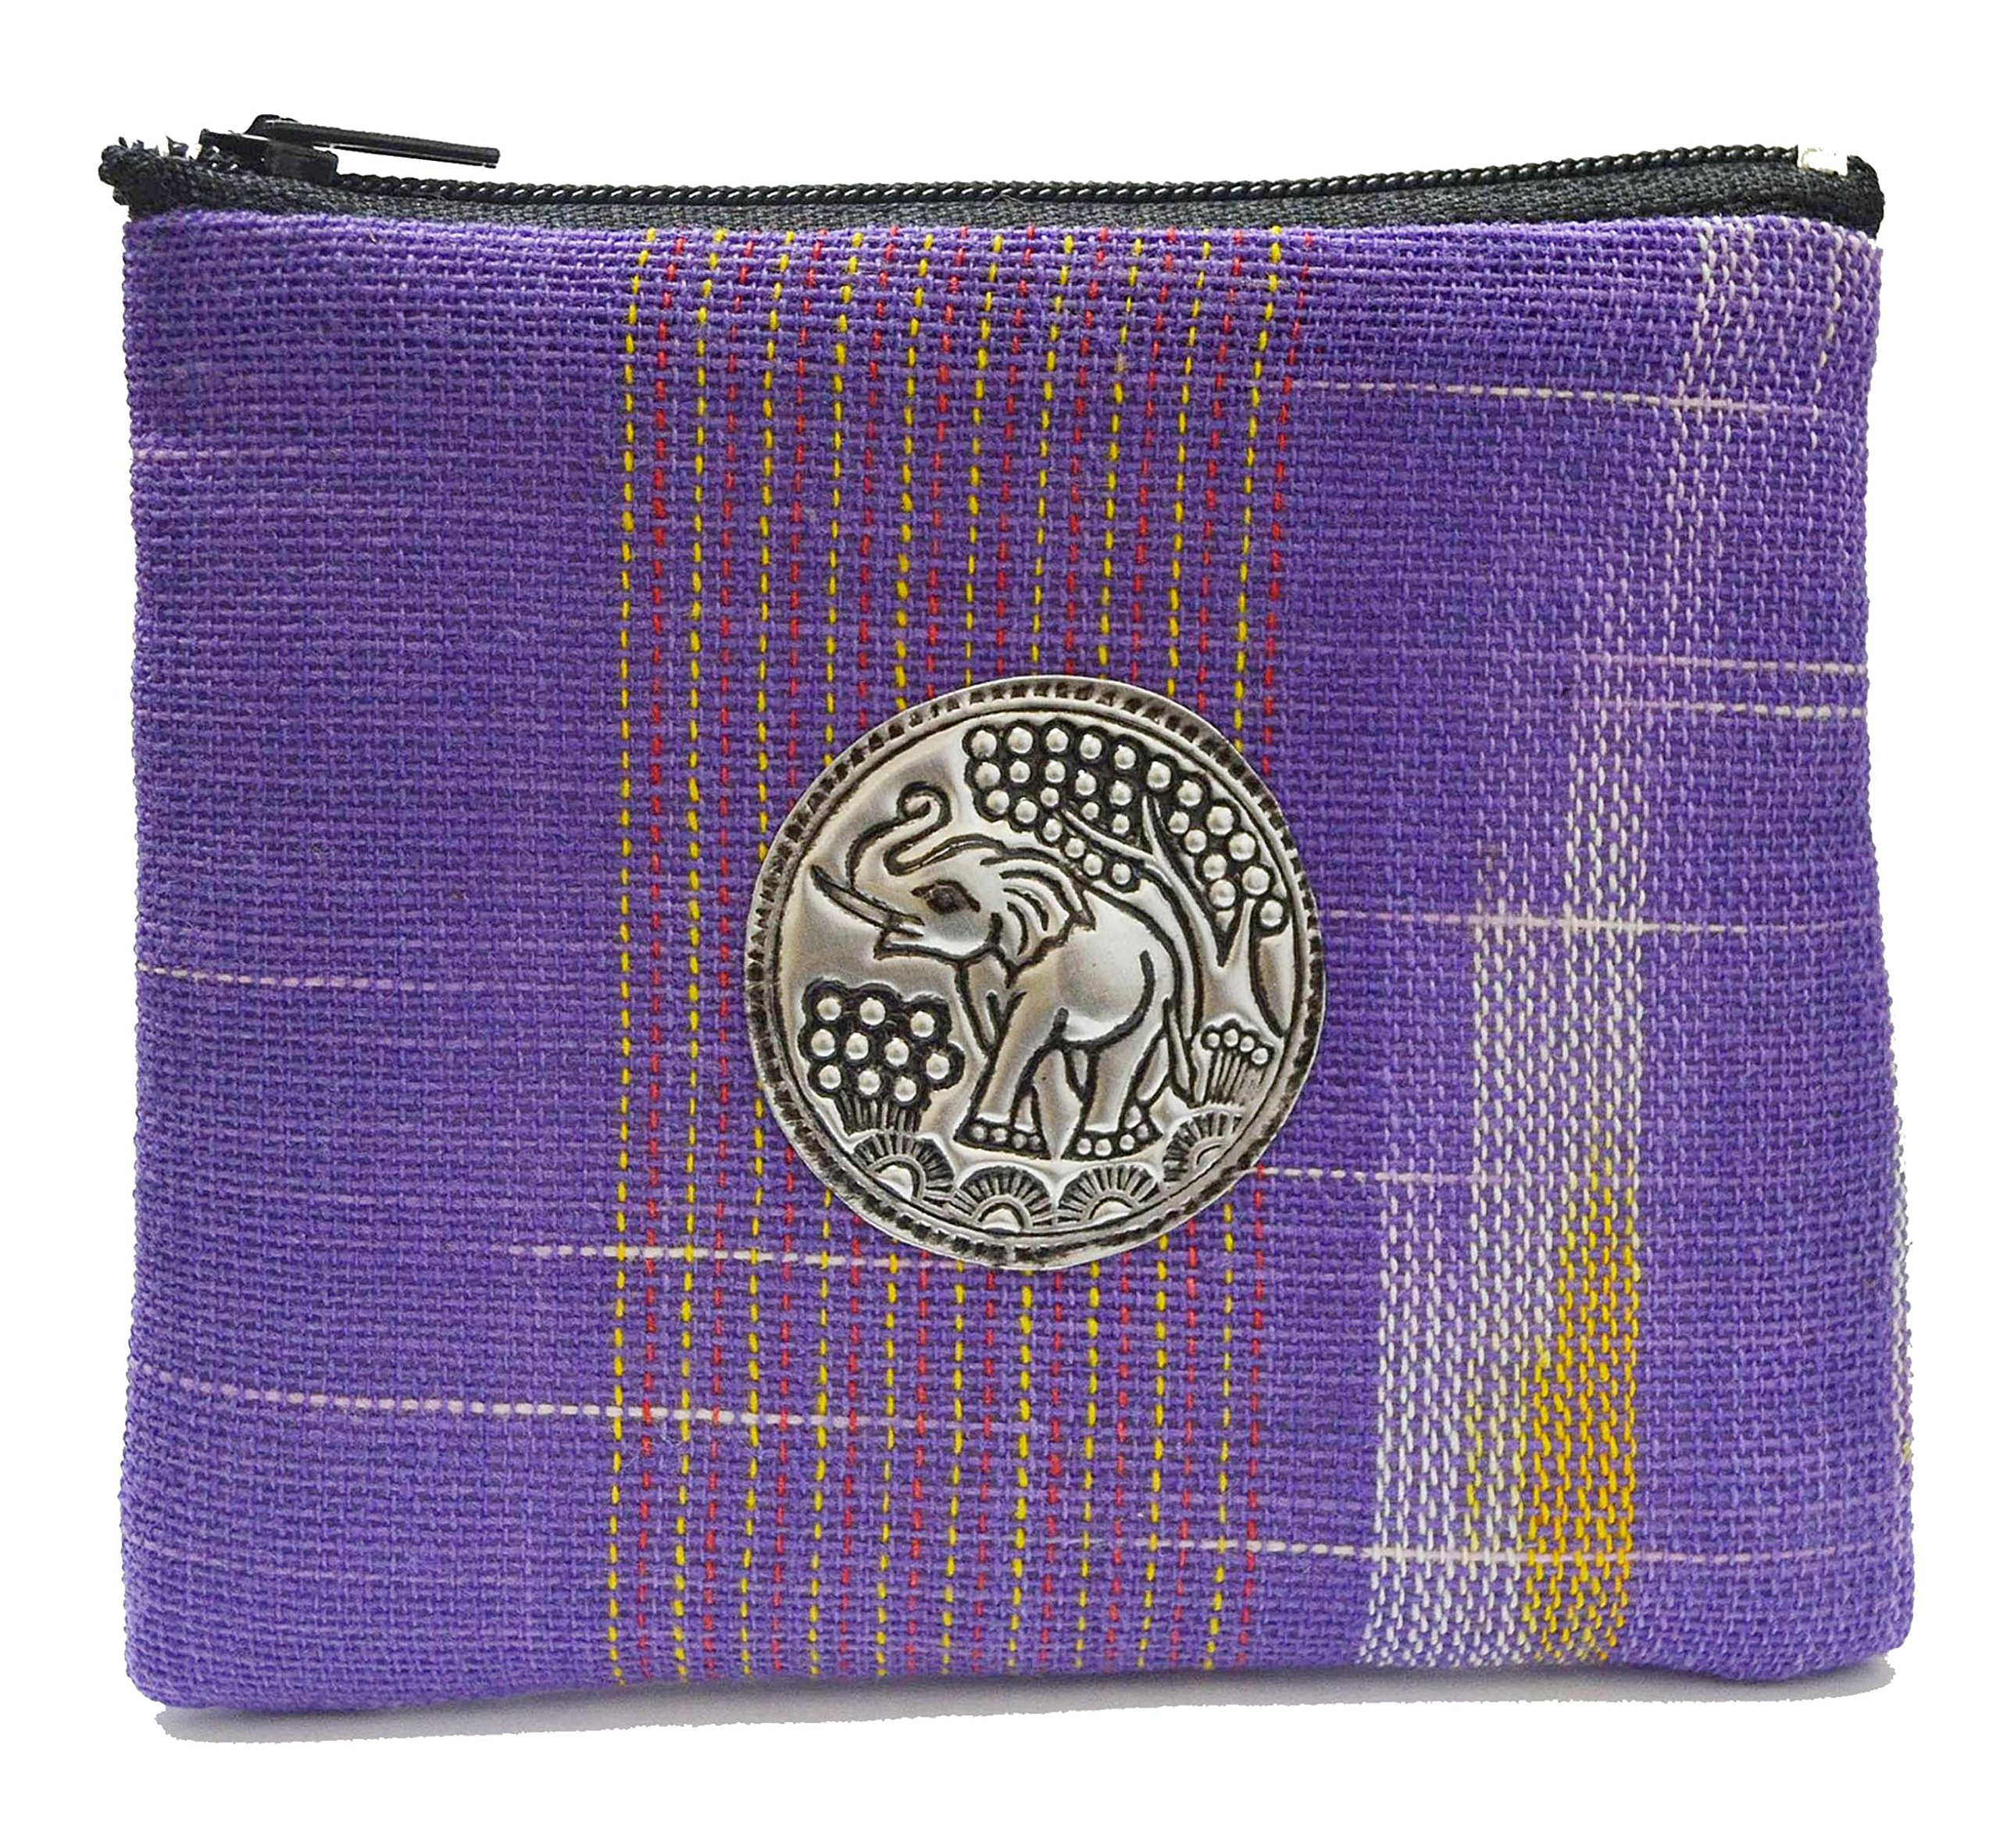 Thai Gift Thai Handmade Small Coin Bags Wallet Elephant Vintage Style From Thailand by Thai Cotton Bags Wallet